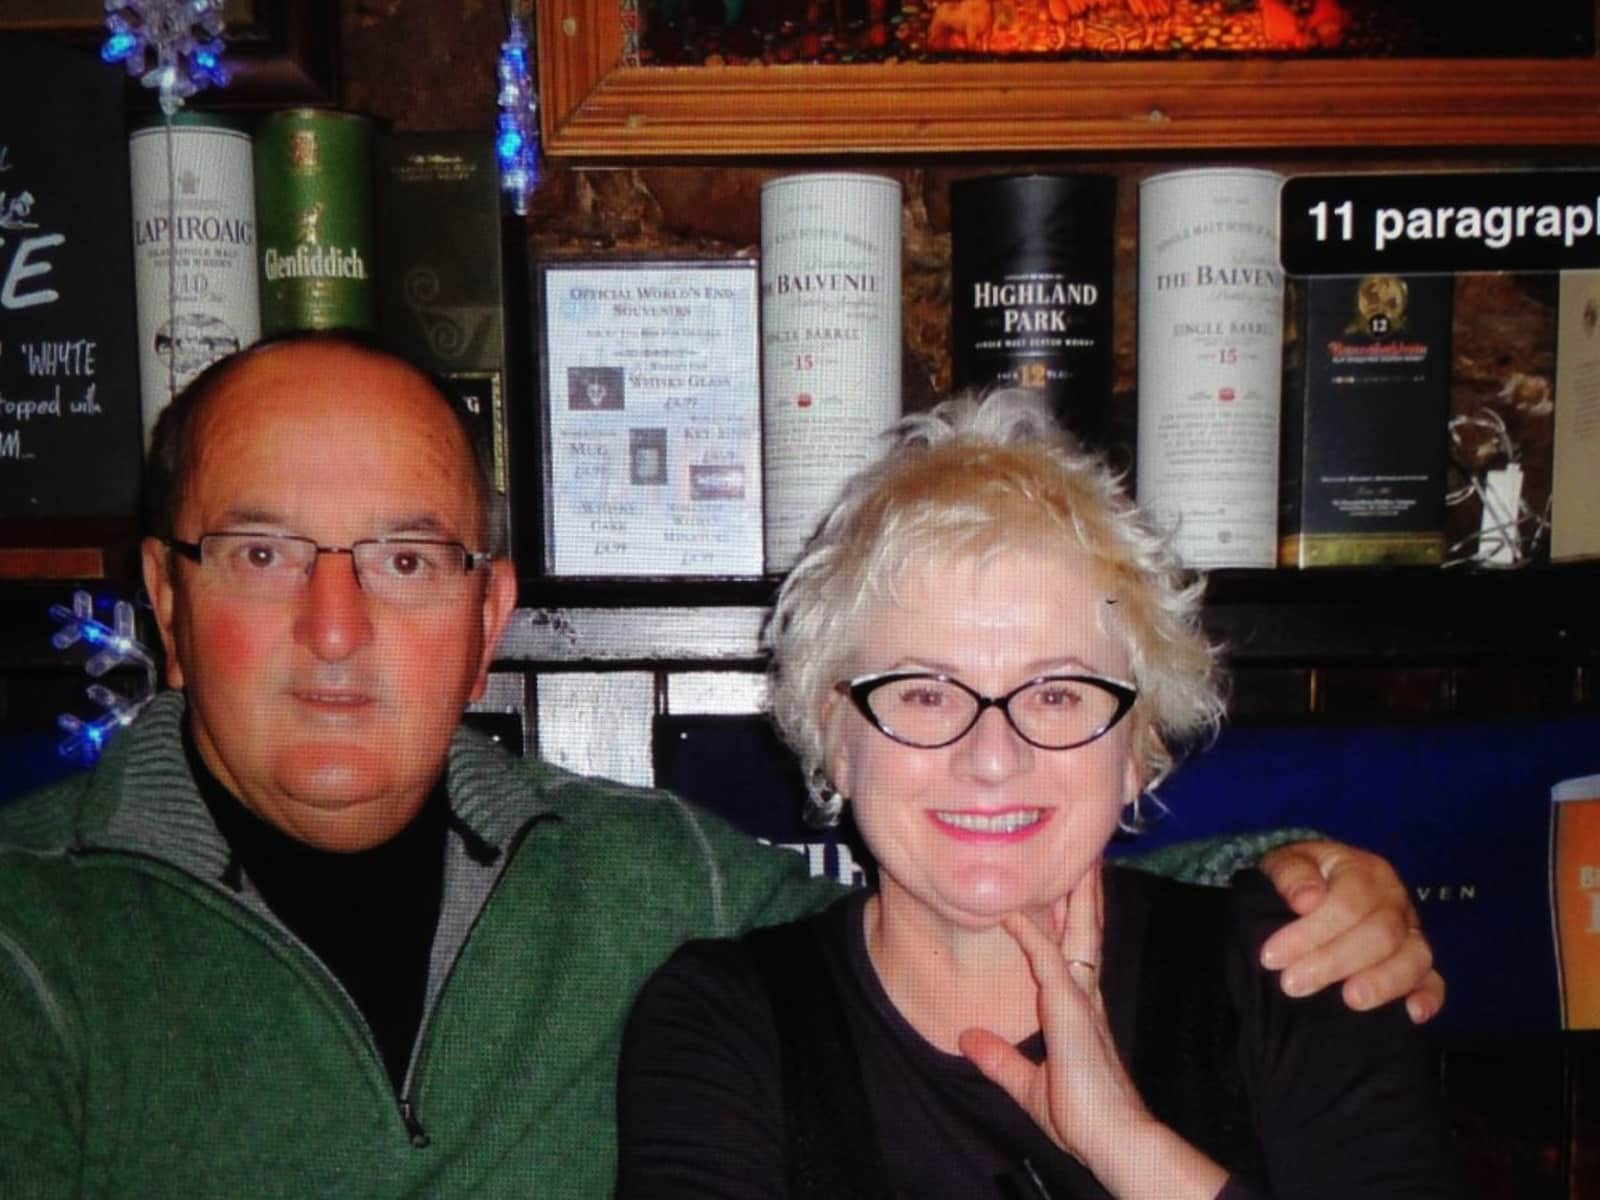 Wendy & Roger from Christchurch, New Zealand